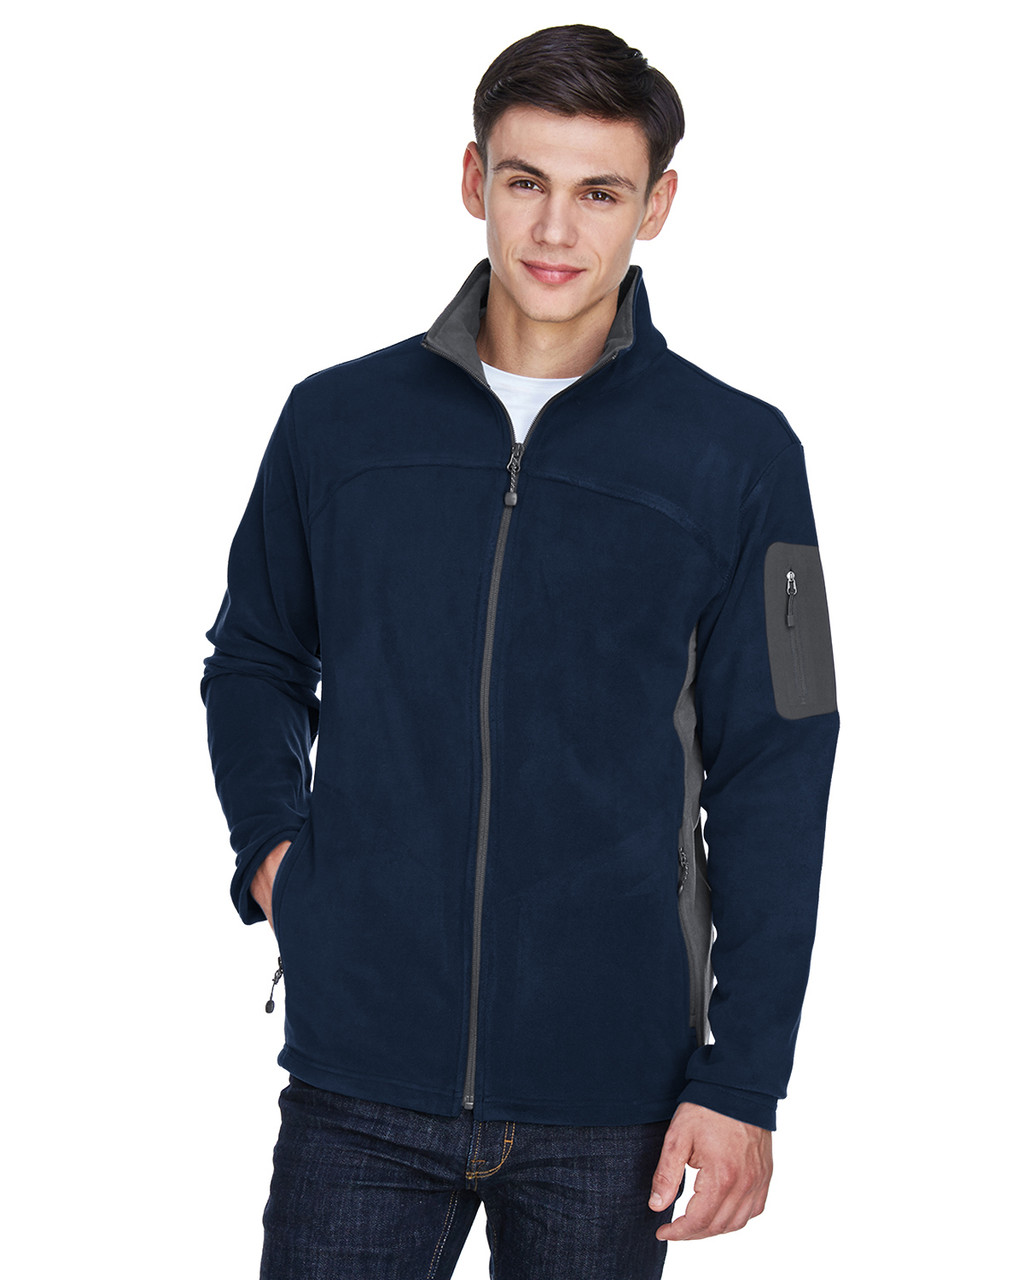 Midnight Navy - 88123 North End Men's Microfleece Jacket | BlankClothing.ca